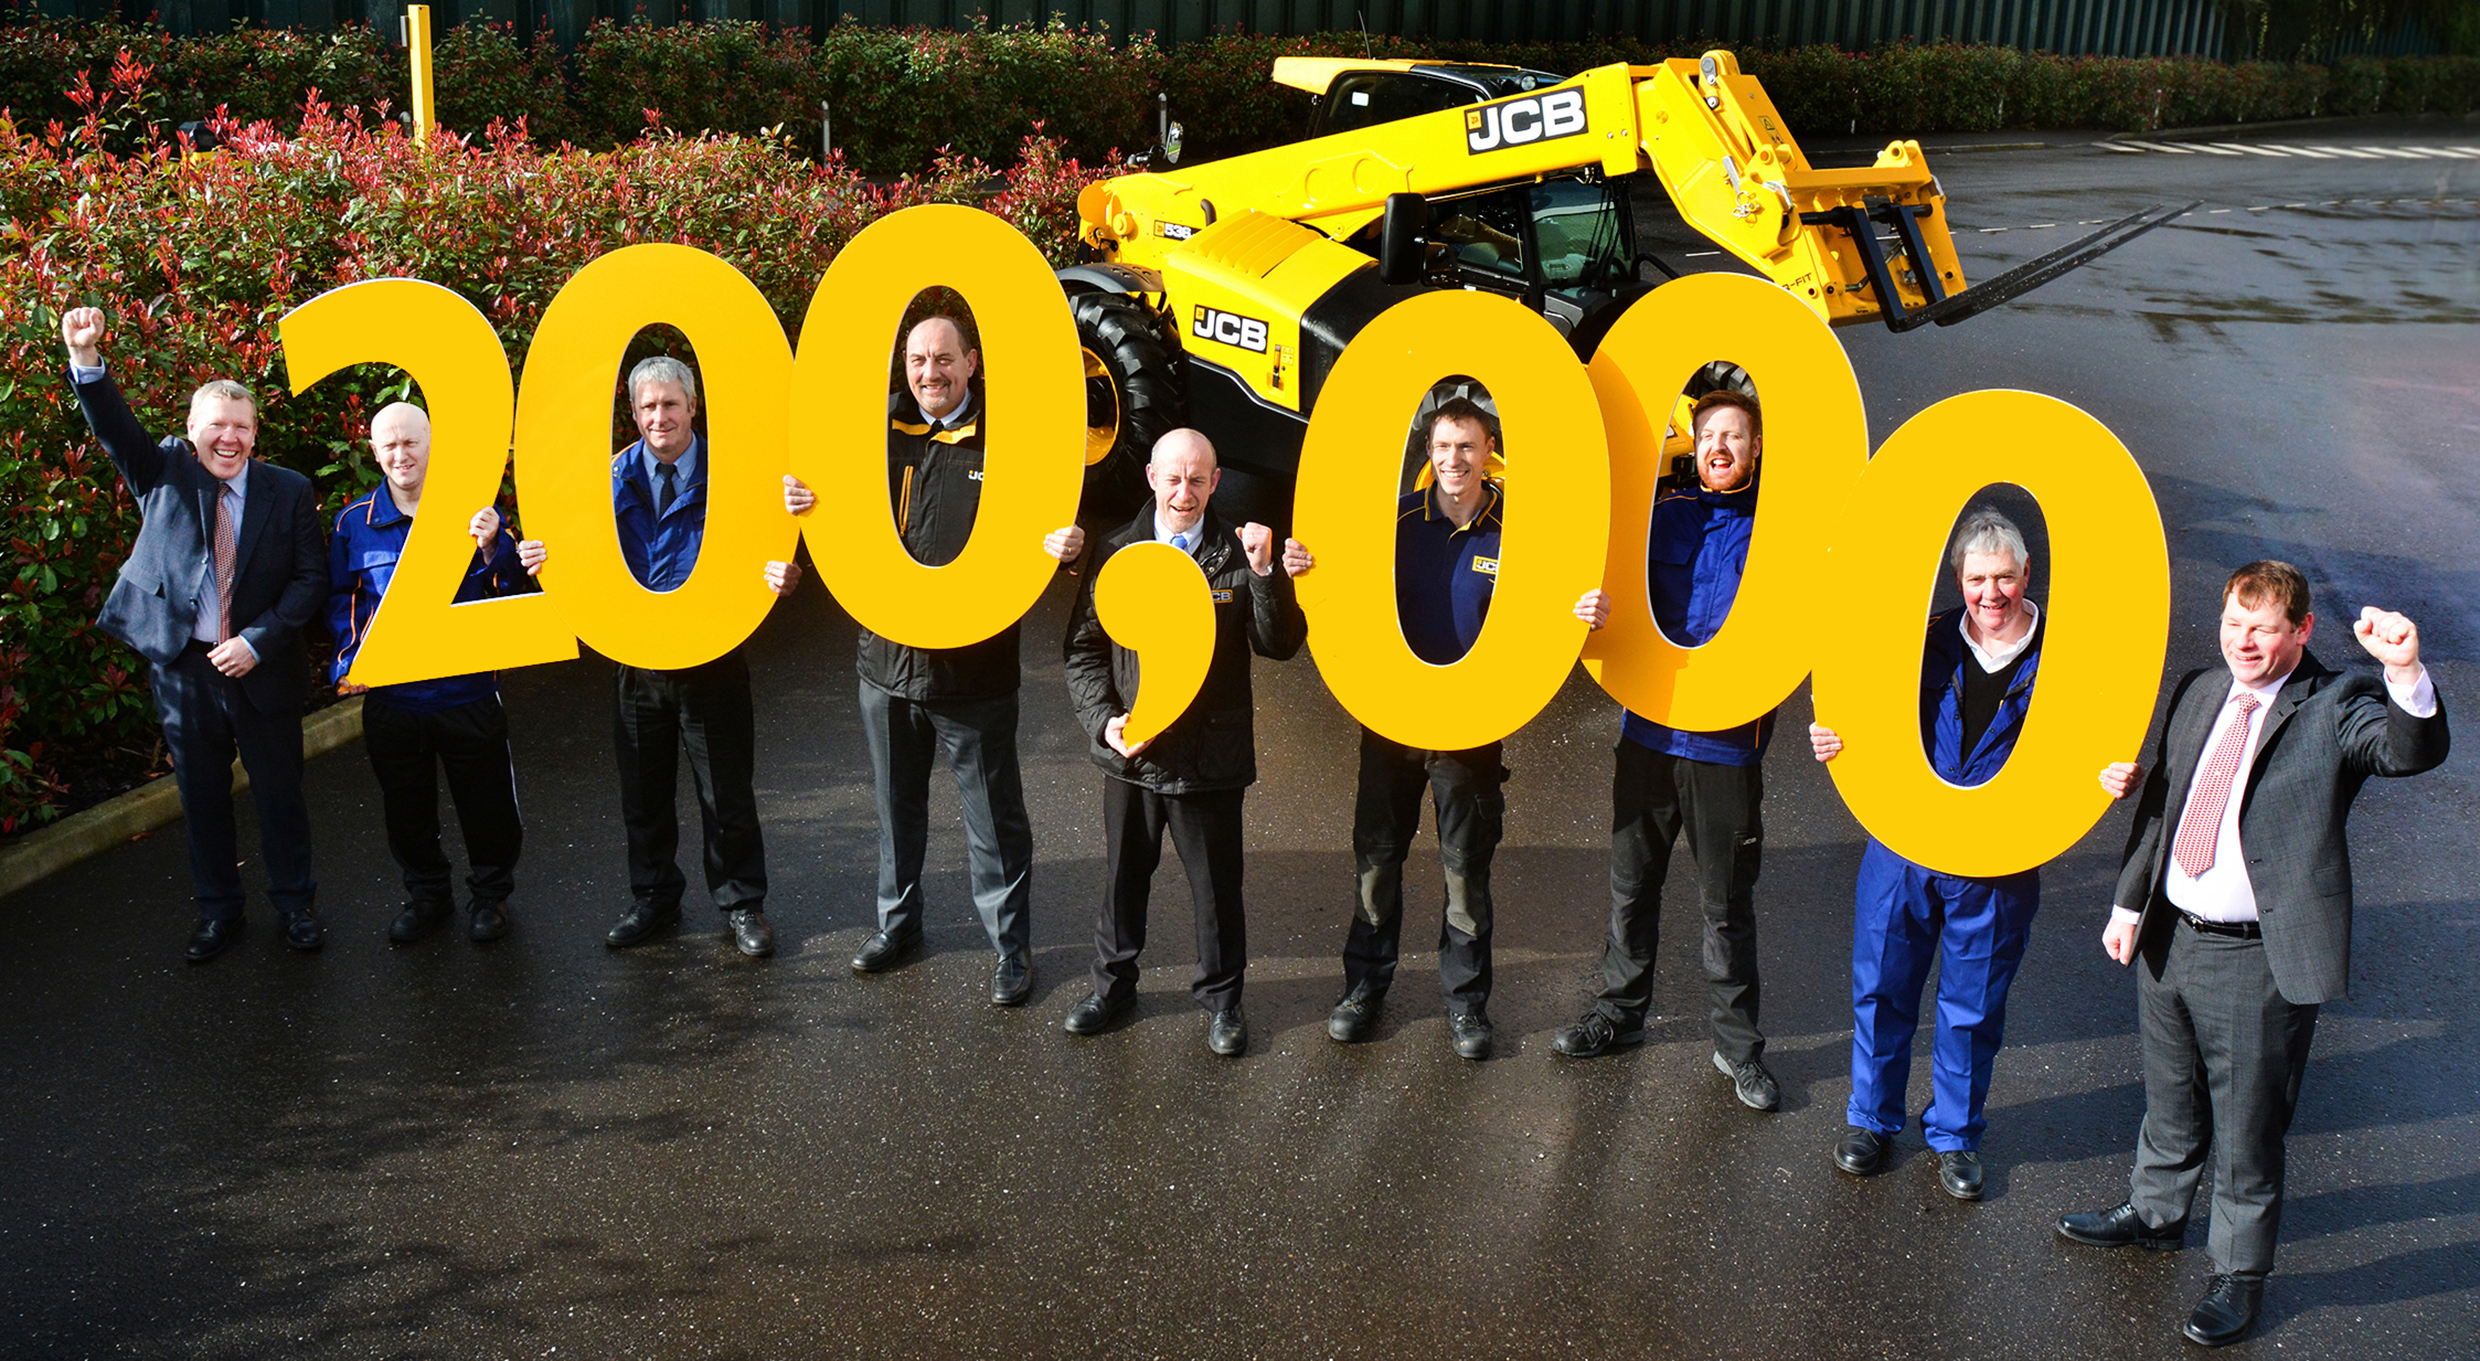 Loadall MD Ian Pratt (extreme left) and Loadall Operations Director Paul Grys (extreme right) join employees (l-r) Ian Vickery, Cliff Ferrie, Mick Smith, Dave Bailey, Nick Miller, Paul Stockley and Richard Jenkinson in celebrating the 200,000th Loadall milestone.